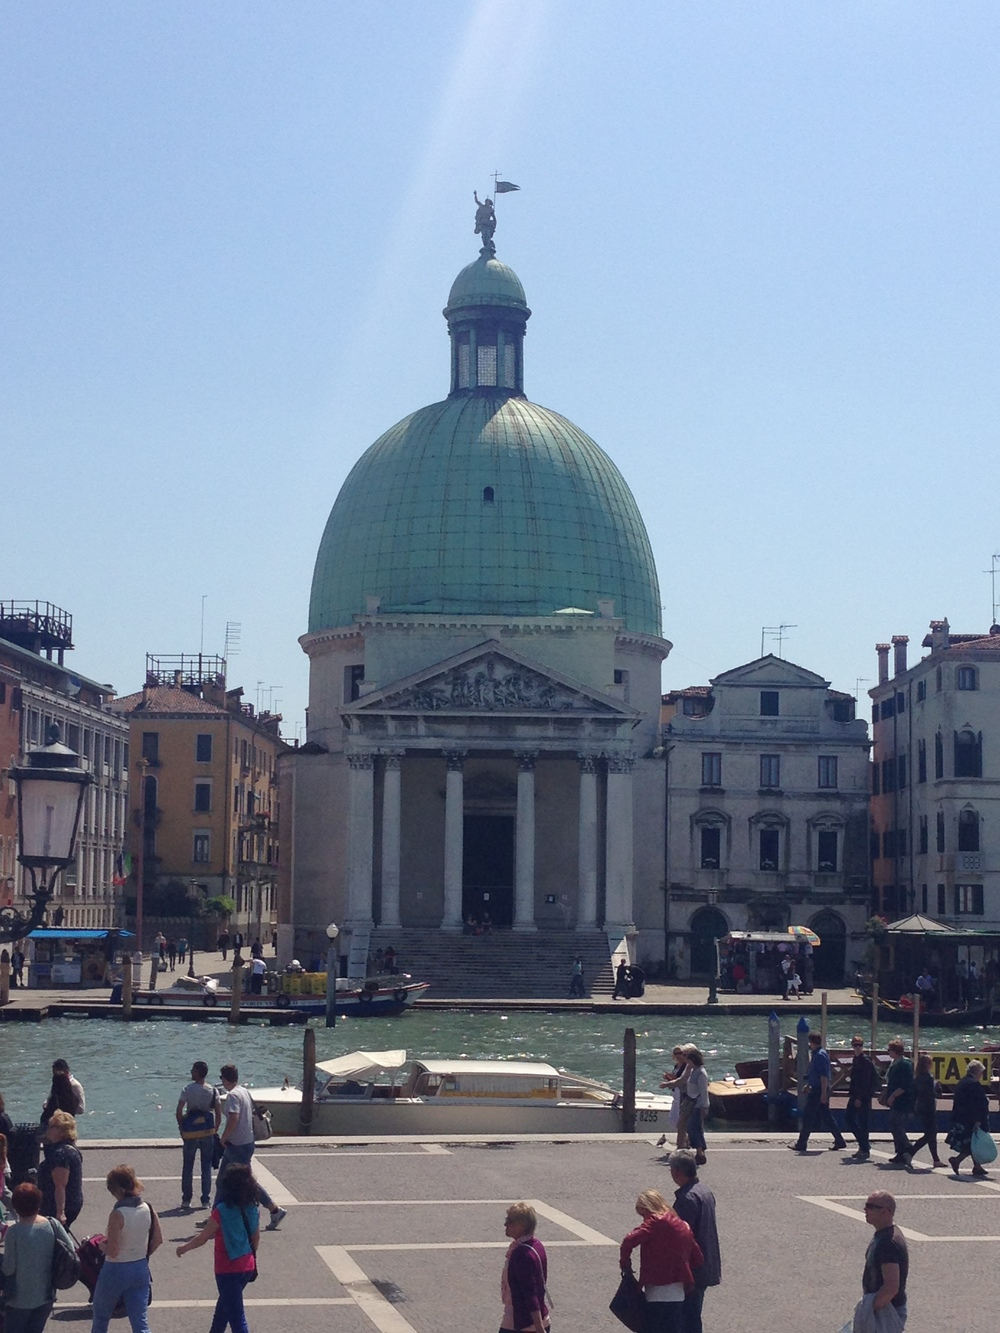 the view outside the train station, venice, italy